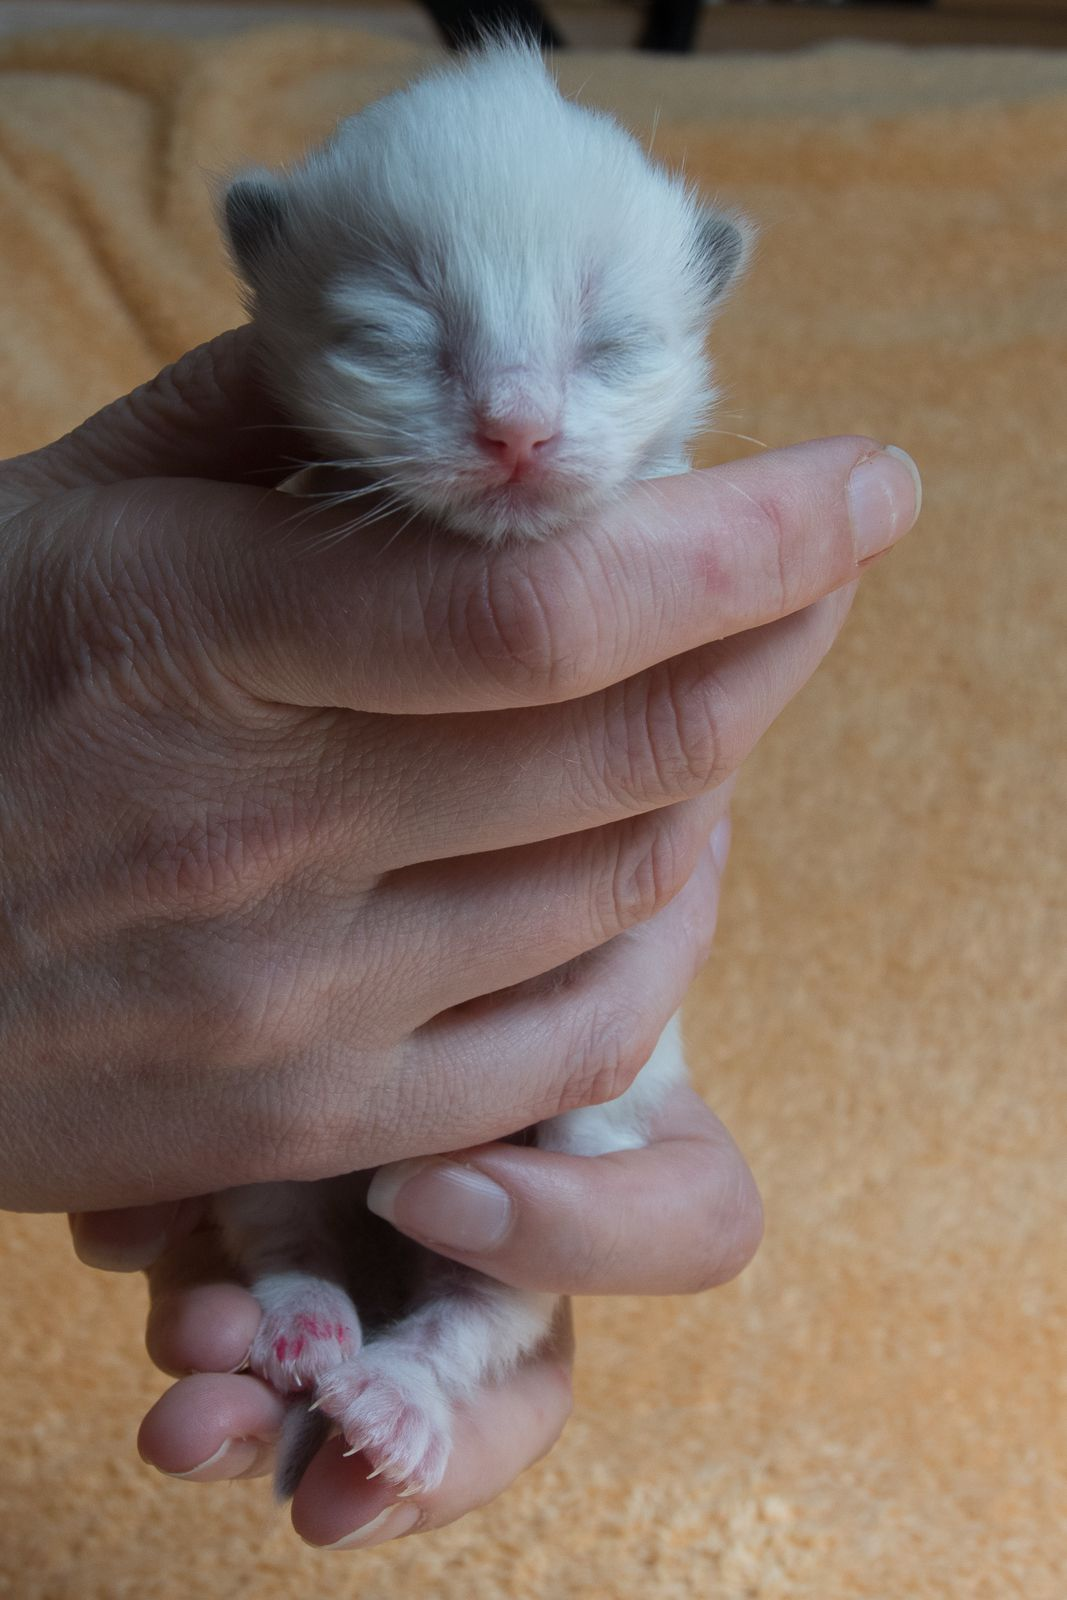 2015 Lady Sif A Zwollywood Cat. 1 Week old. Ragdoll